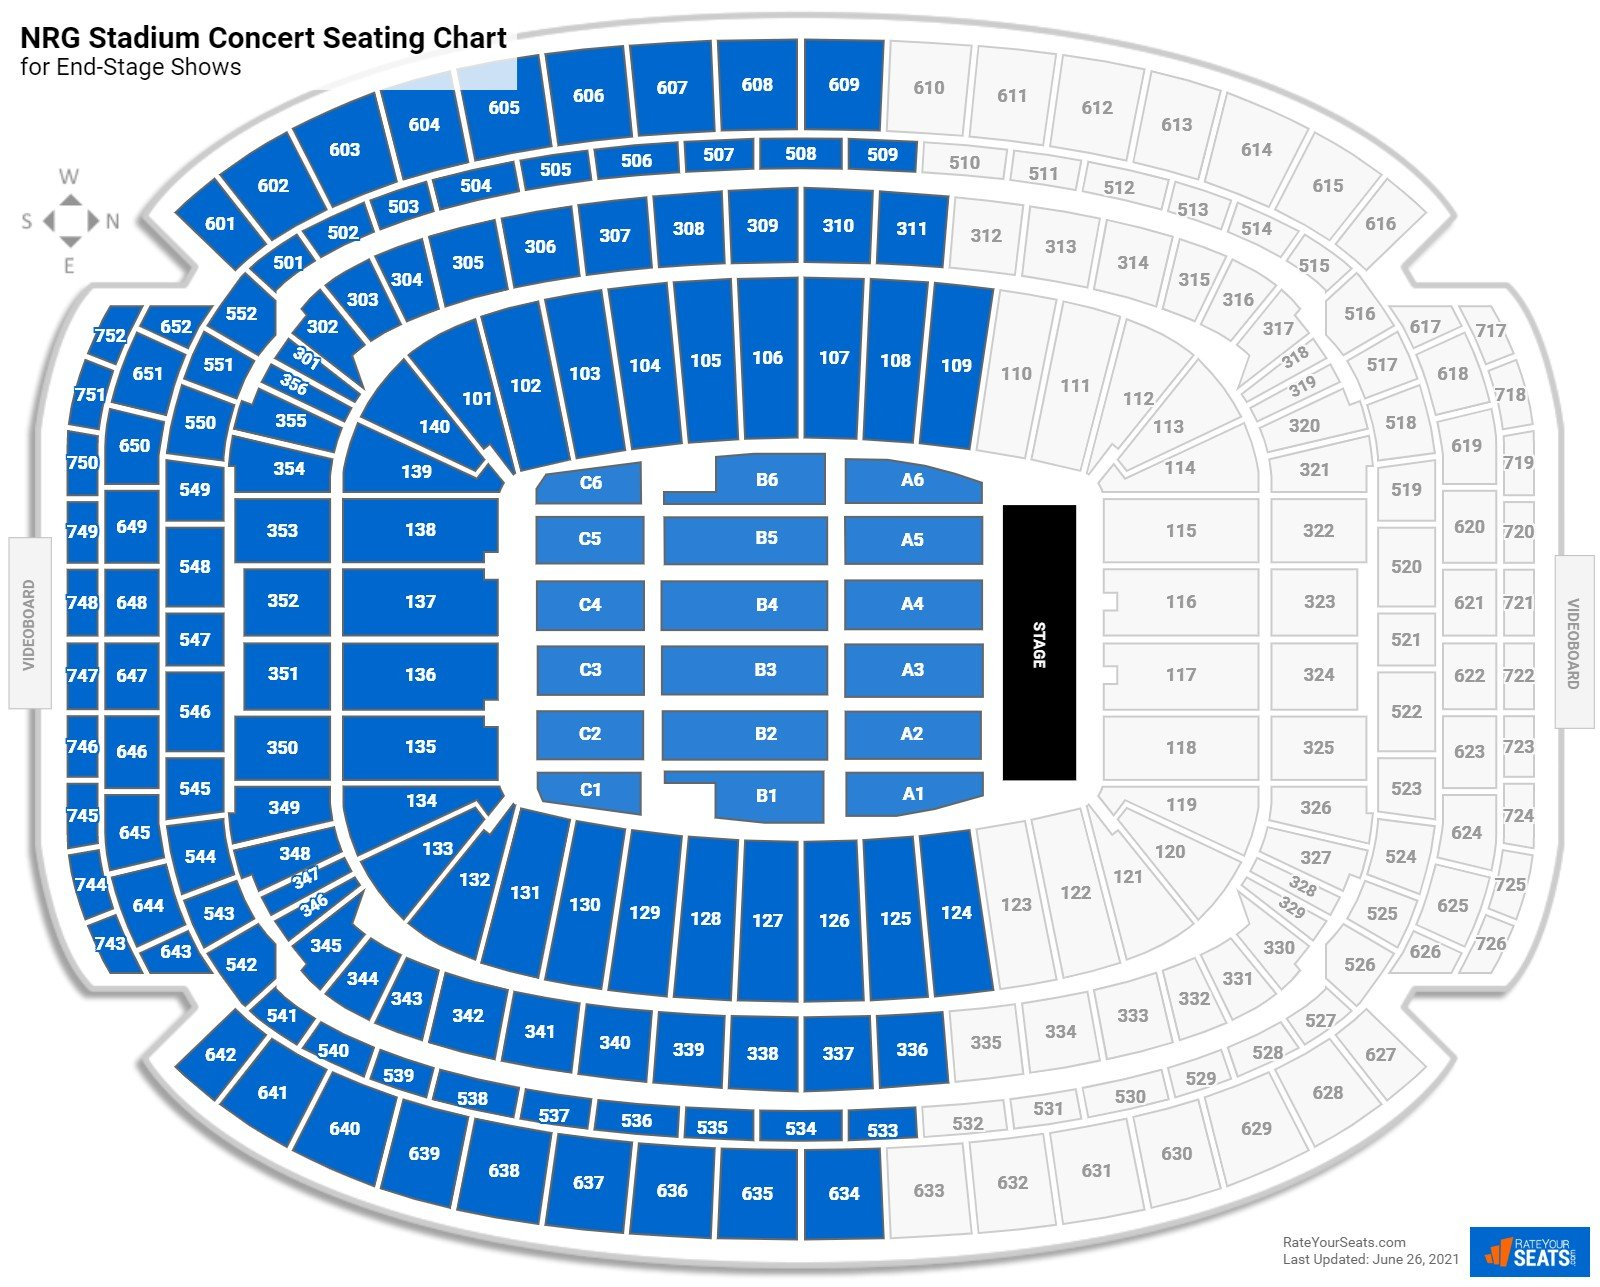 NRG Stadium Seating Chart for Concerts